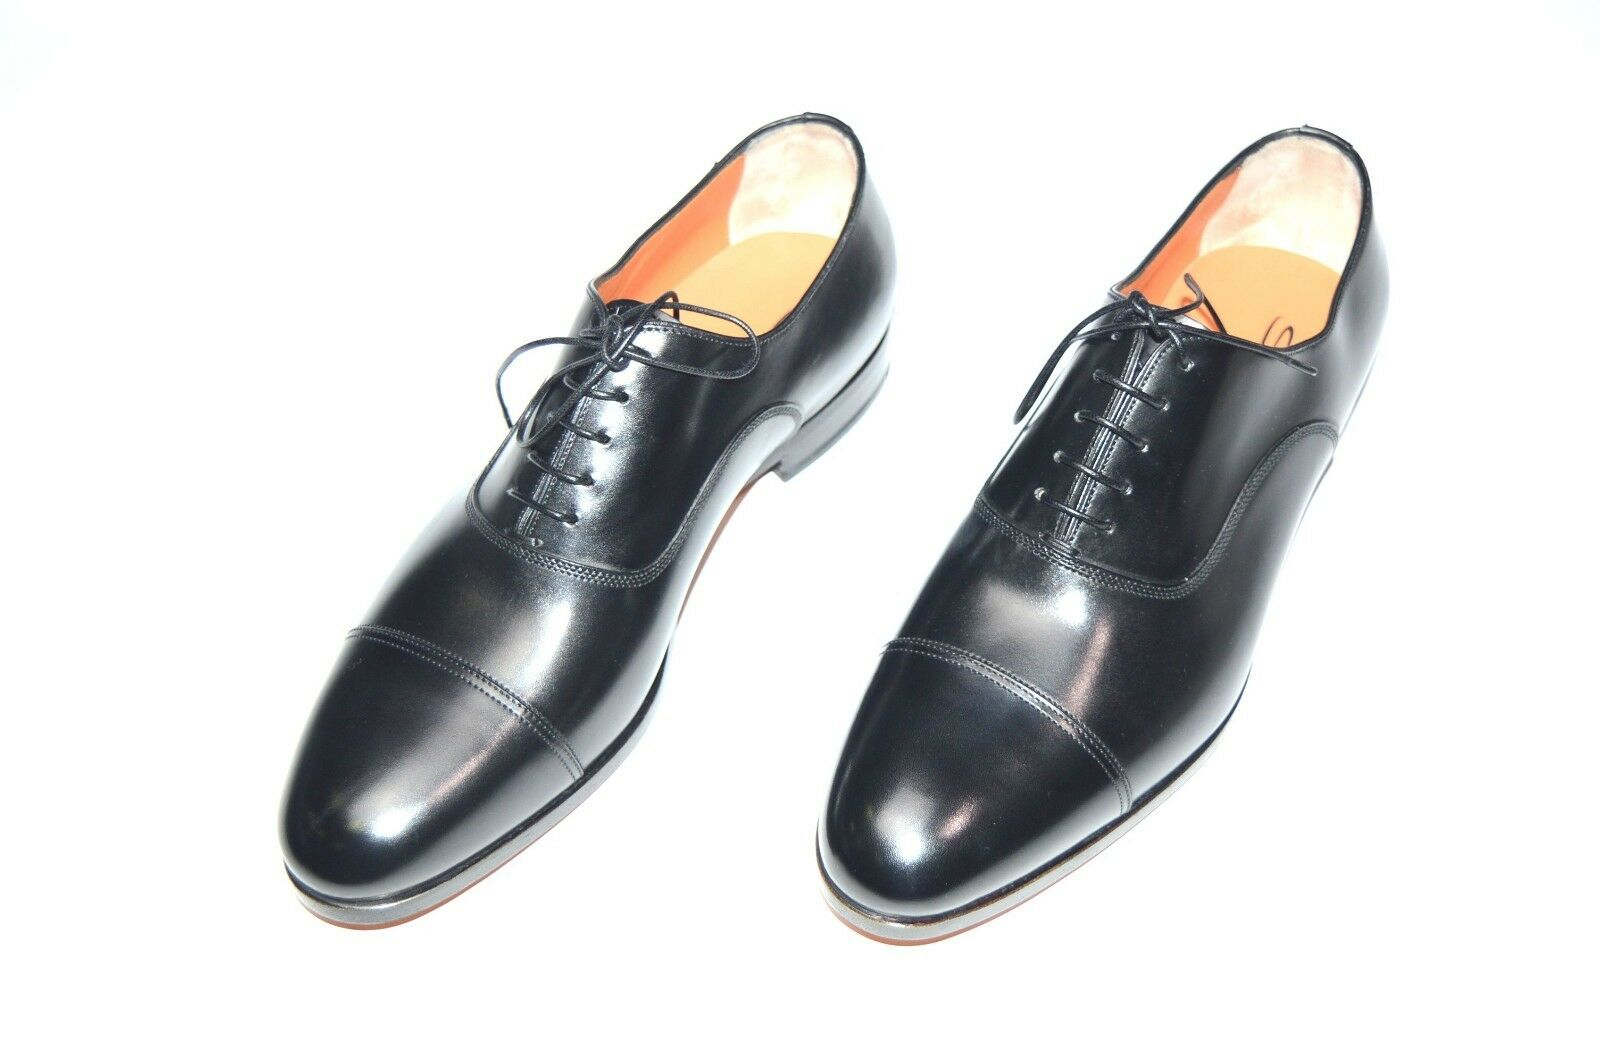 Consumers First Gruppo Clark Black Cap Toe Oxford Dress Shoes Size Eu 44 us 11